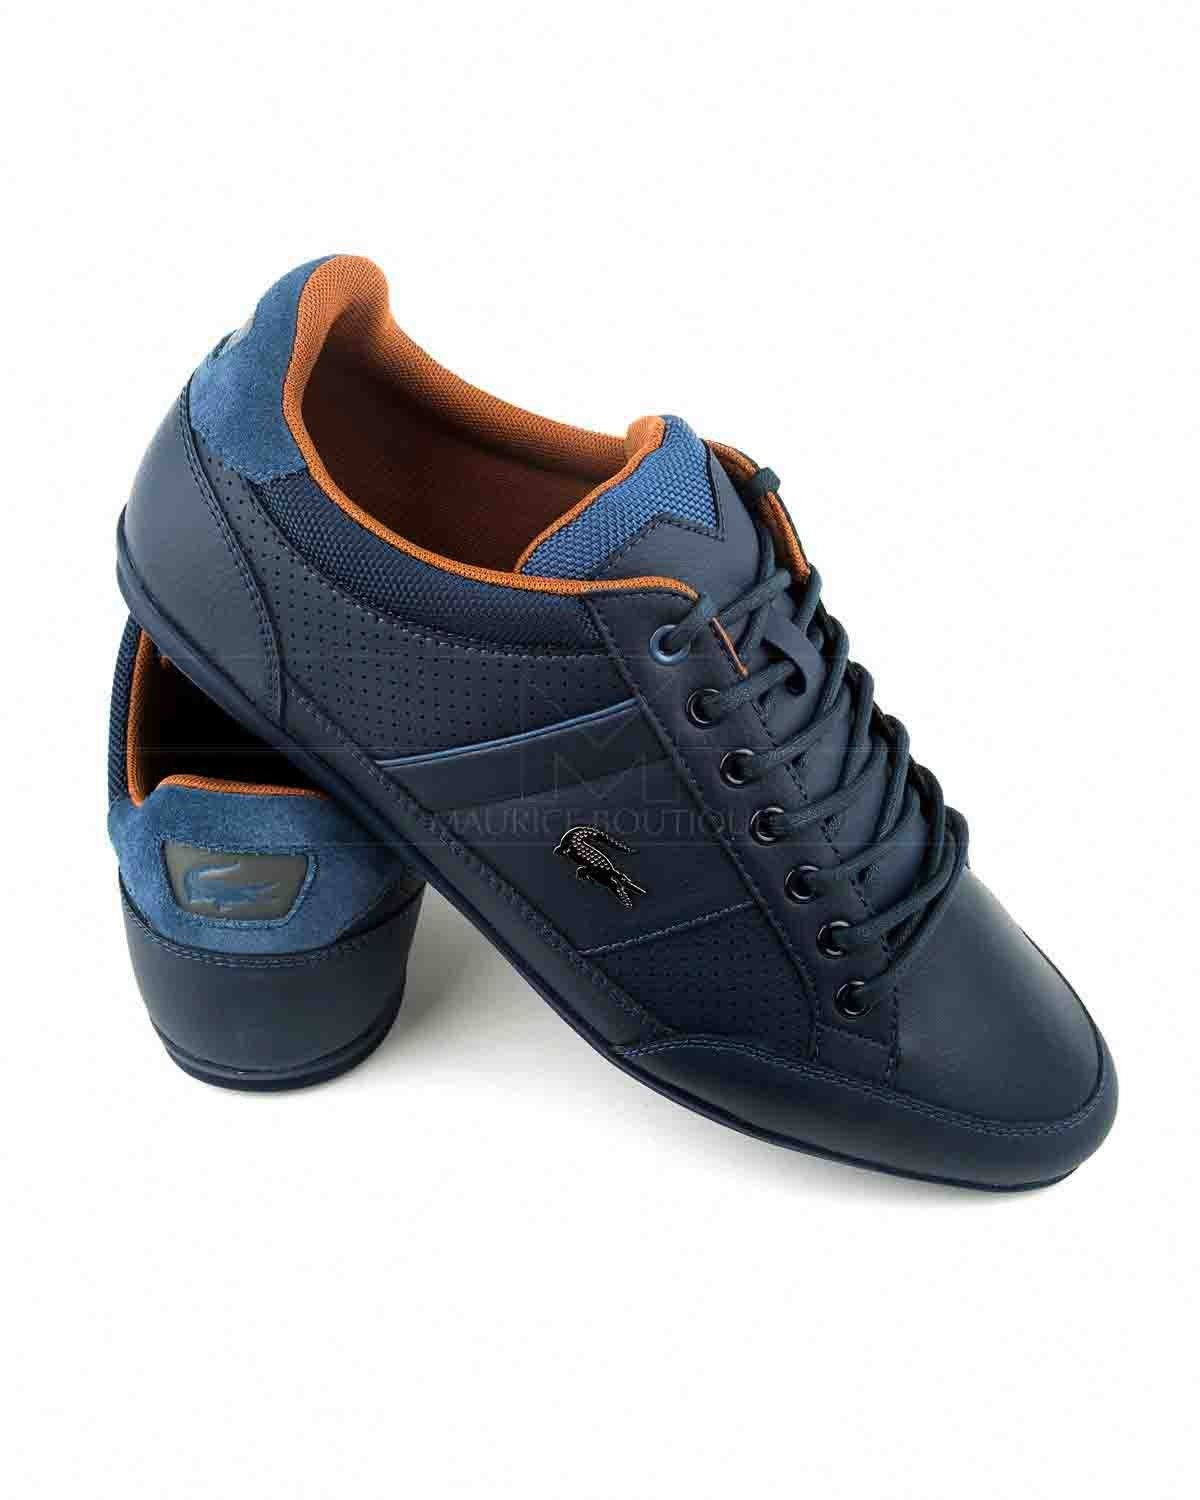 08abe379482 Lacoste Trainers Chaymon - Navy Blue in 2019